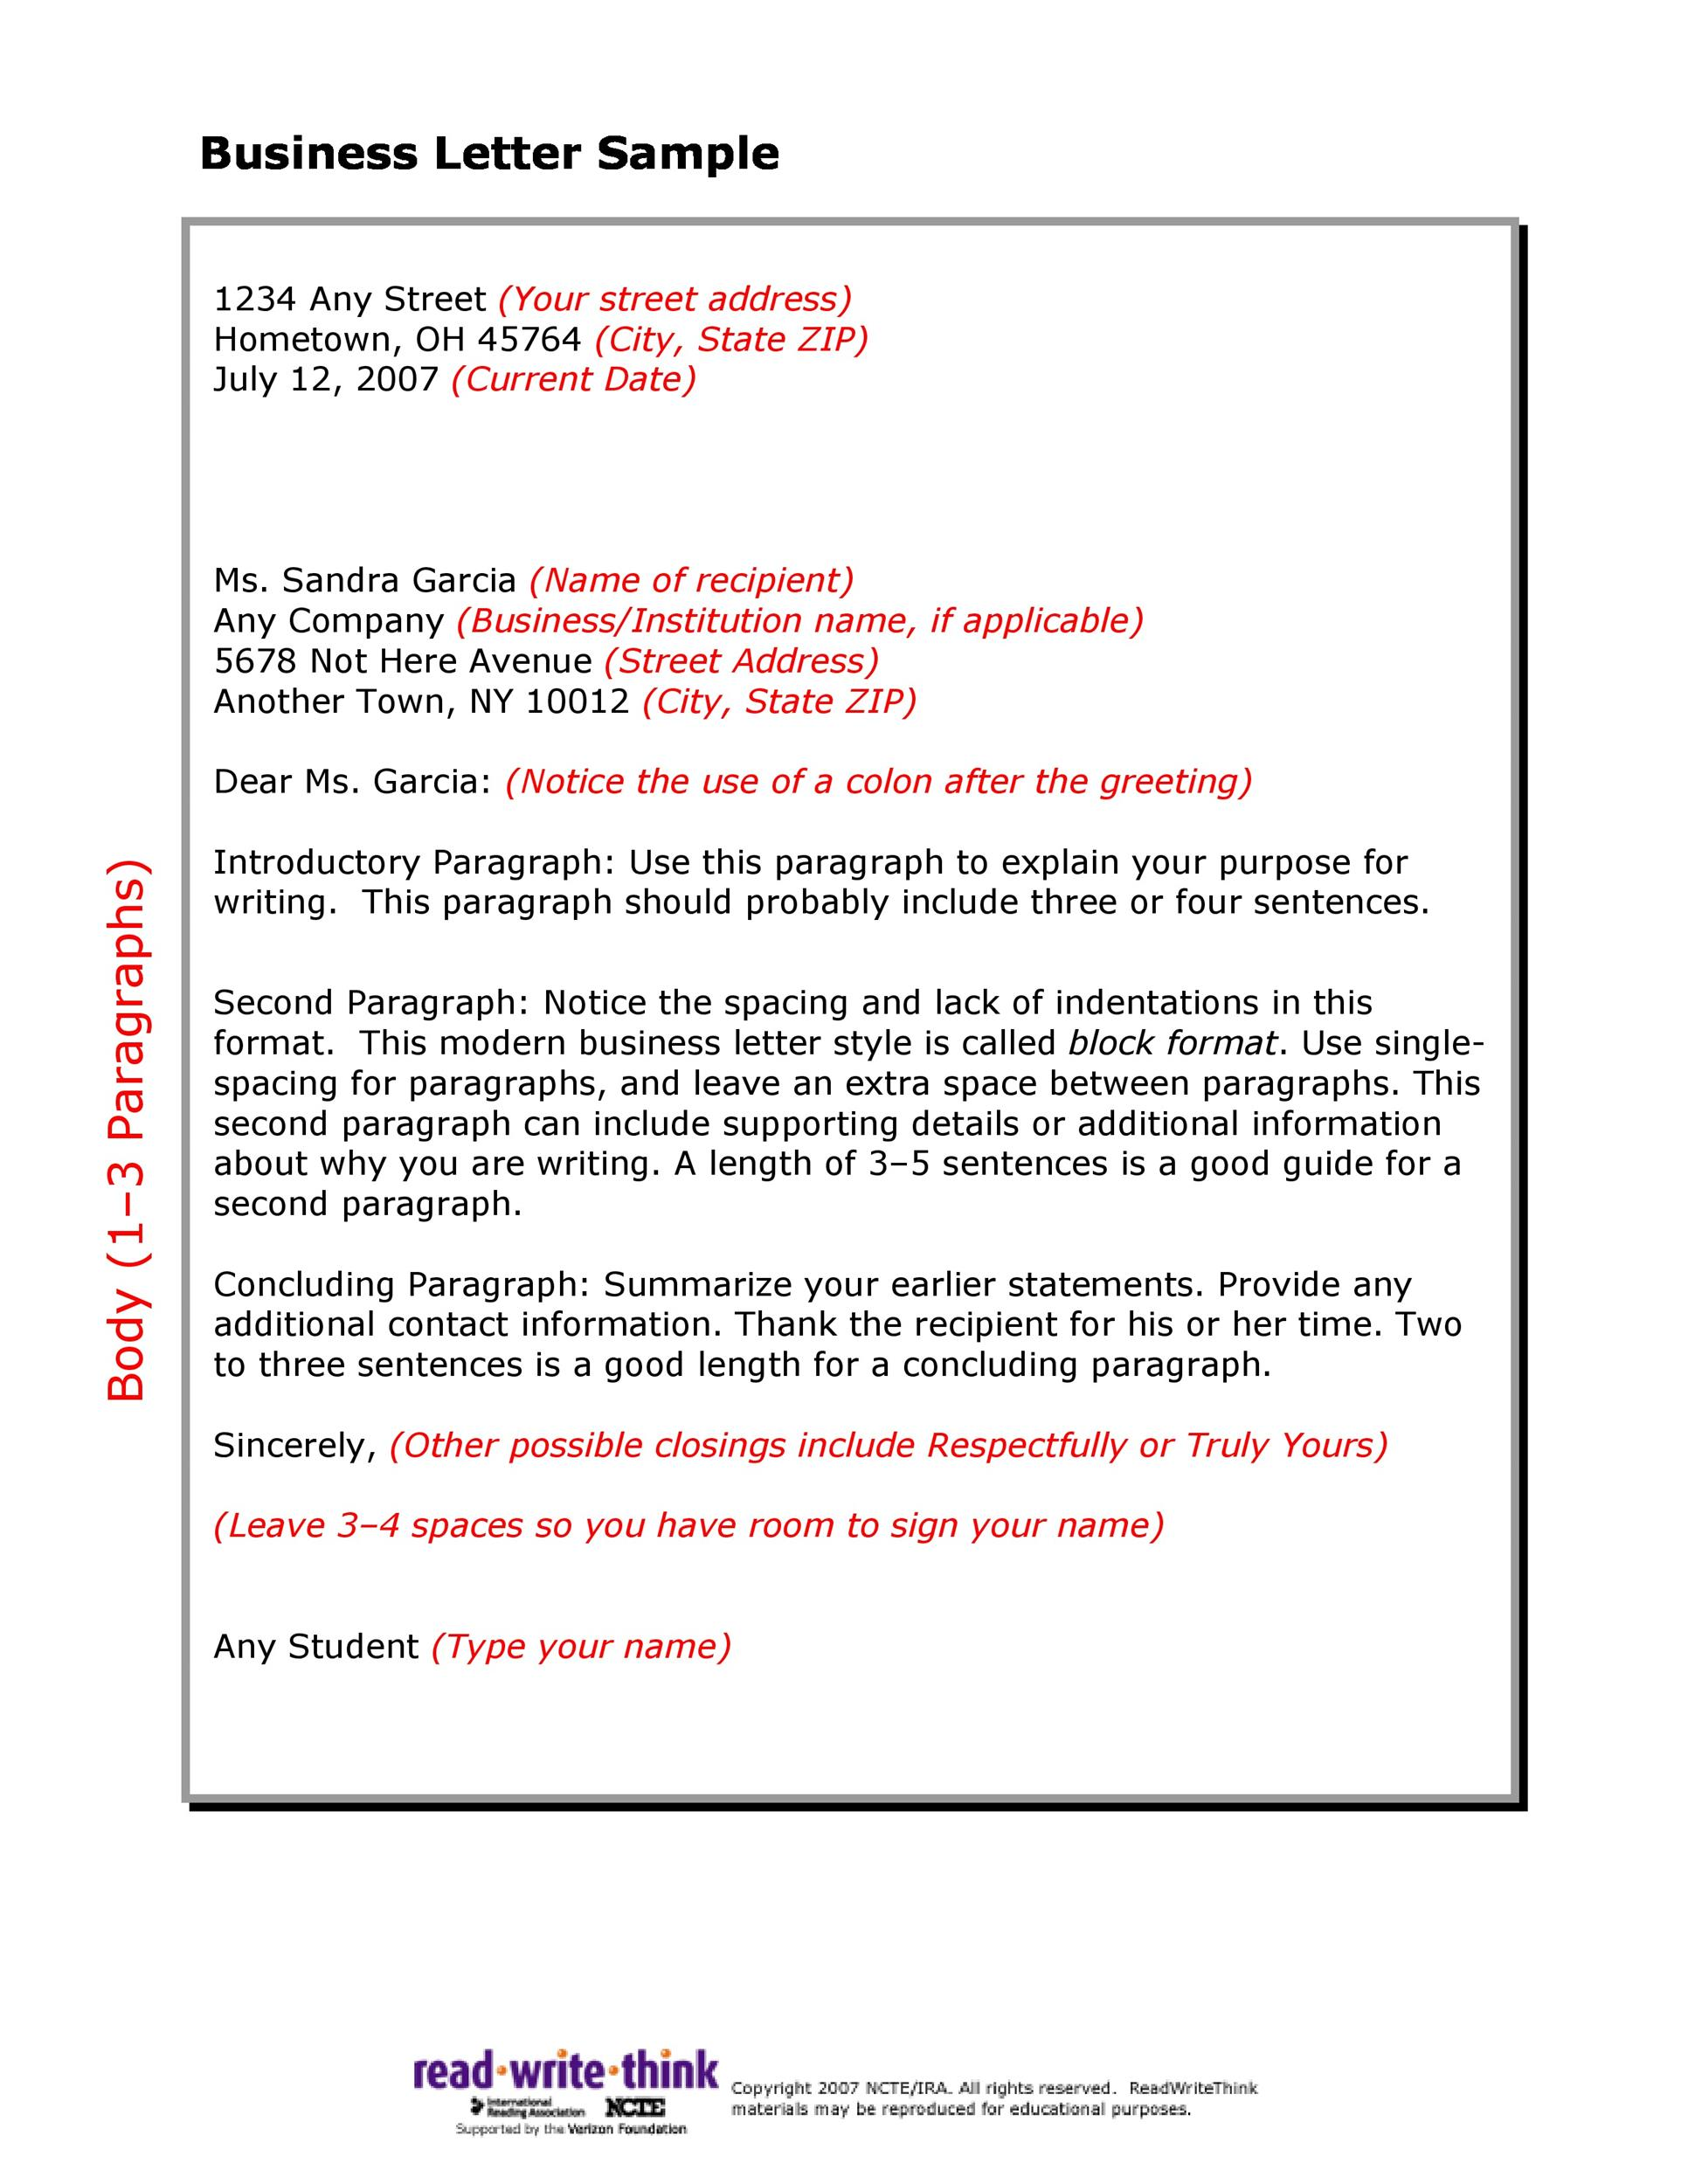 Sample of a formal business letter selol ink sample of a formal business letter wajeb Choice Image